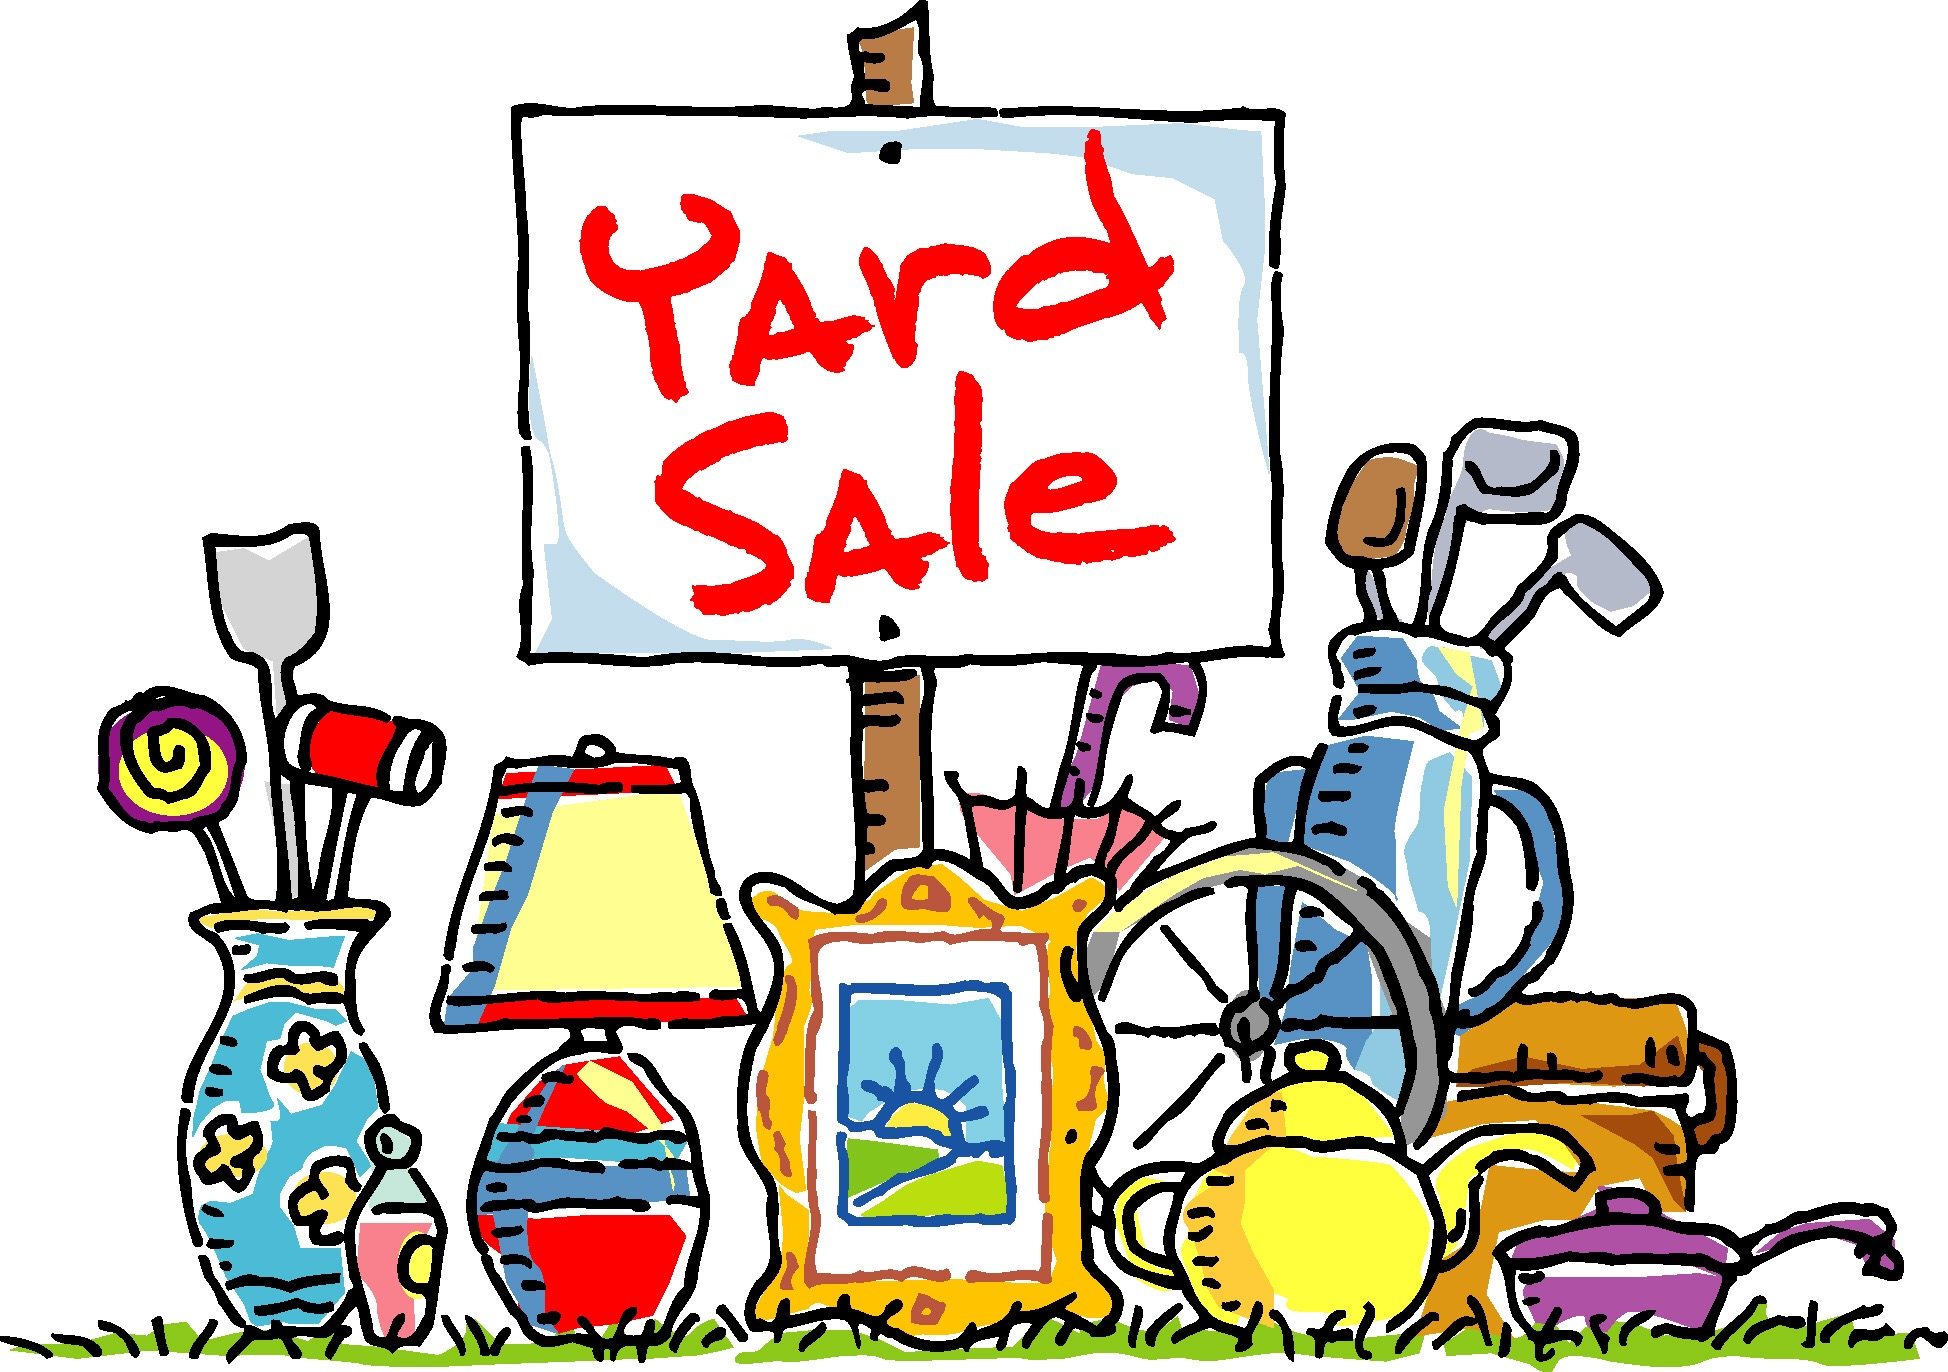 Rain Date Set for Yard Sale